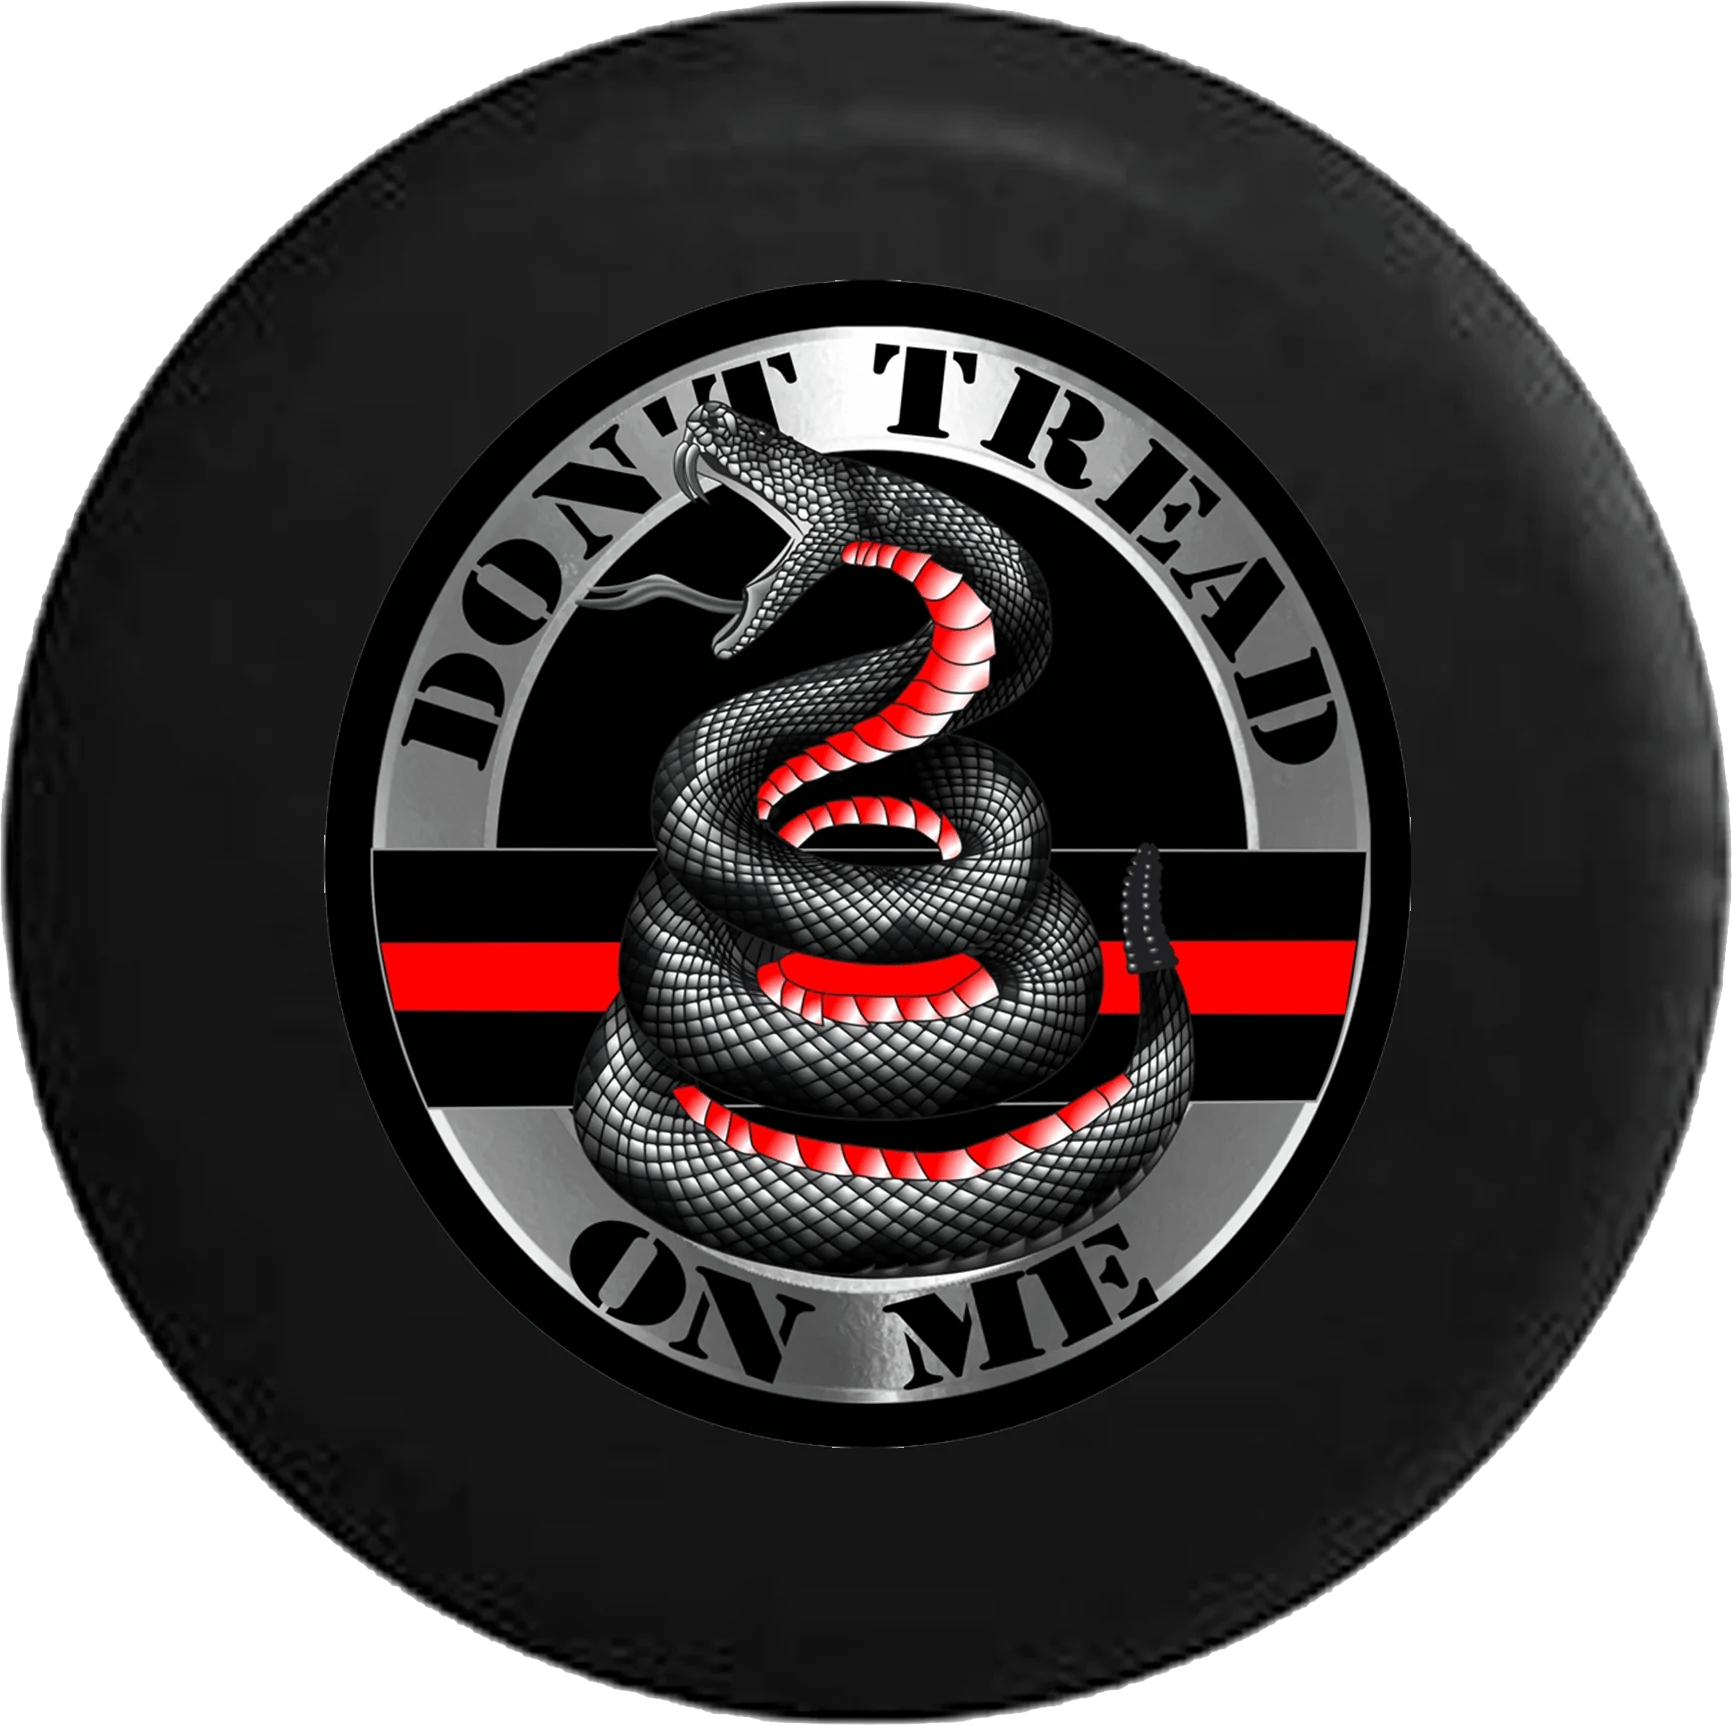 medium resolution of jeep wrangler tire cover with don t tread on me snake tire cover pro tirecoverpro